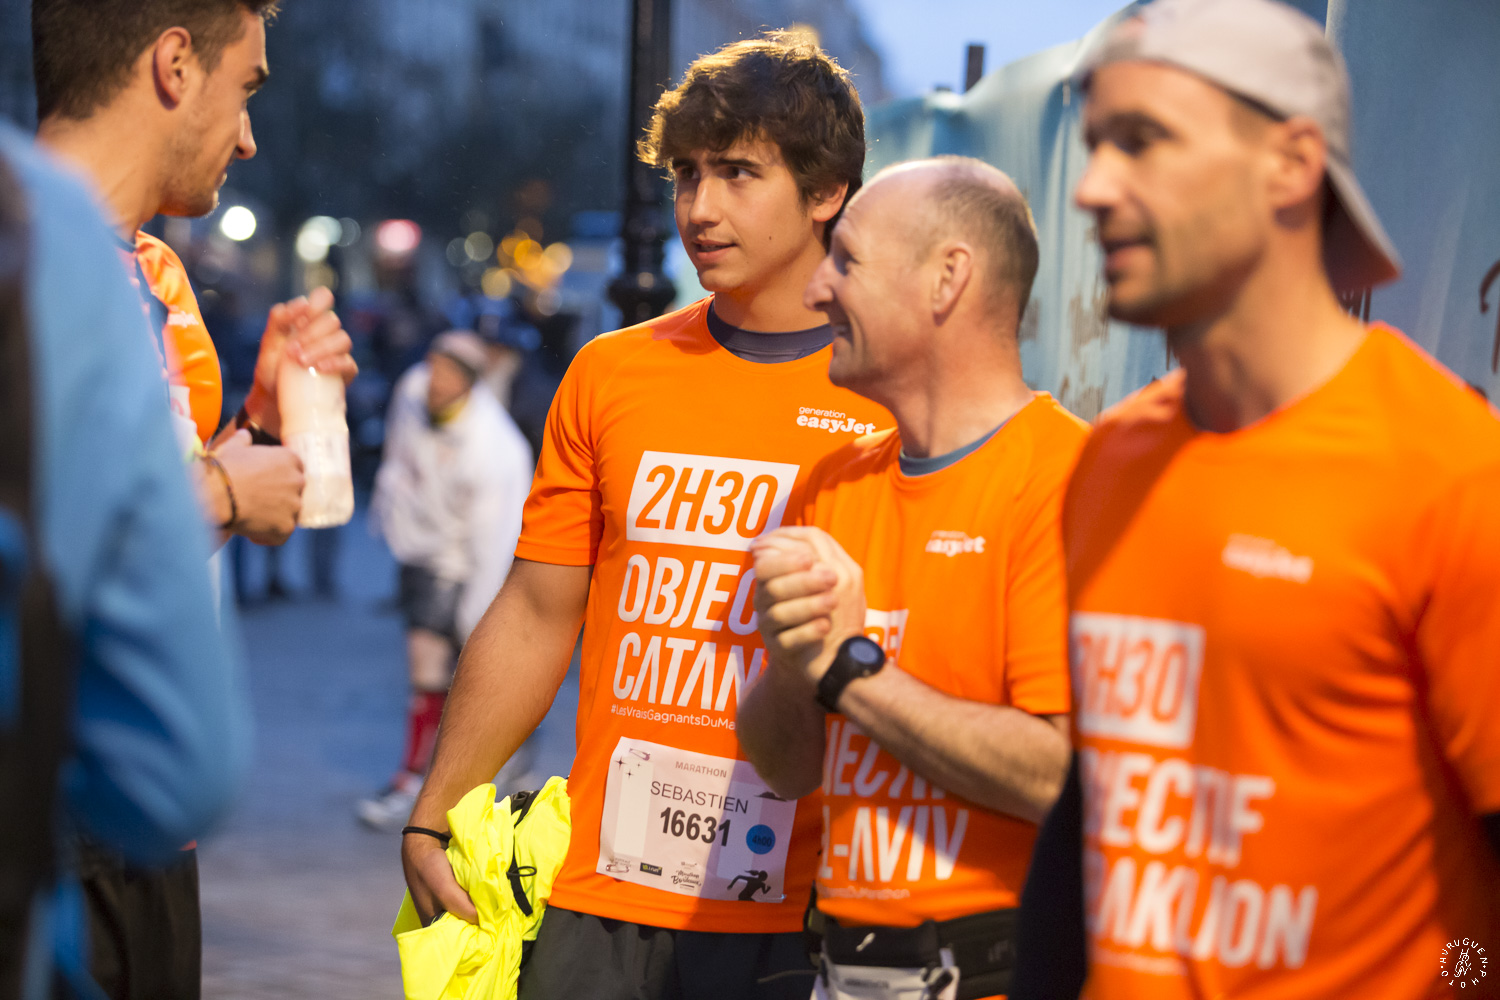 marathon-bordeaux-metropole-2018-mbm-pub-easyjet-operation-communication-8-nouvelles-destinations-au-depart-de-bordeaux-merignac-aeroport-sebastien-huruguen-photographe-3